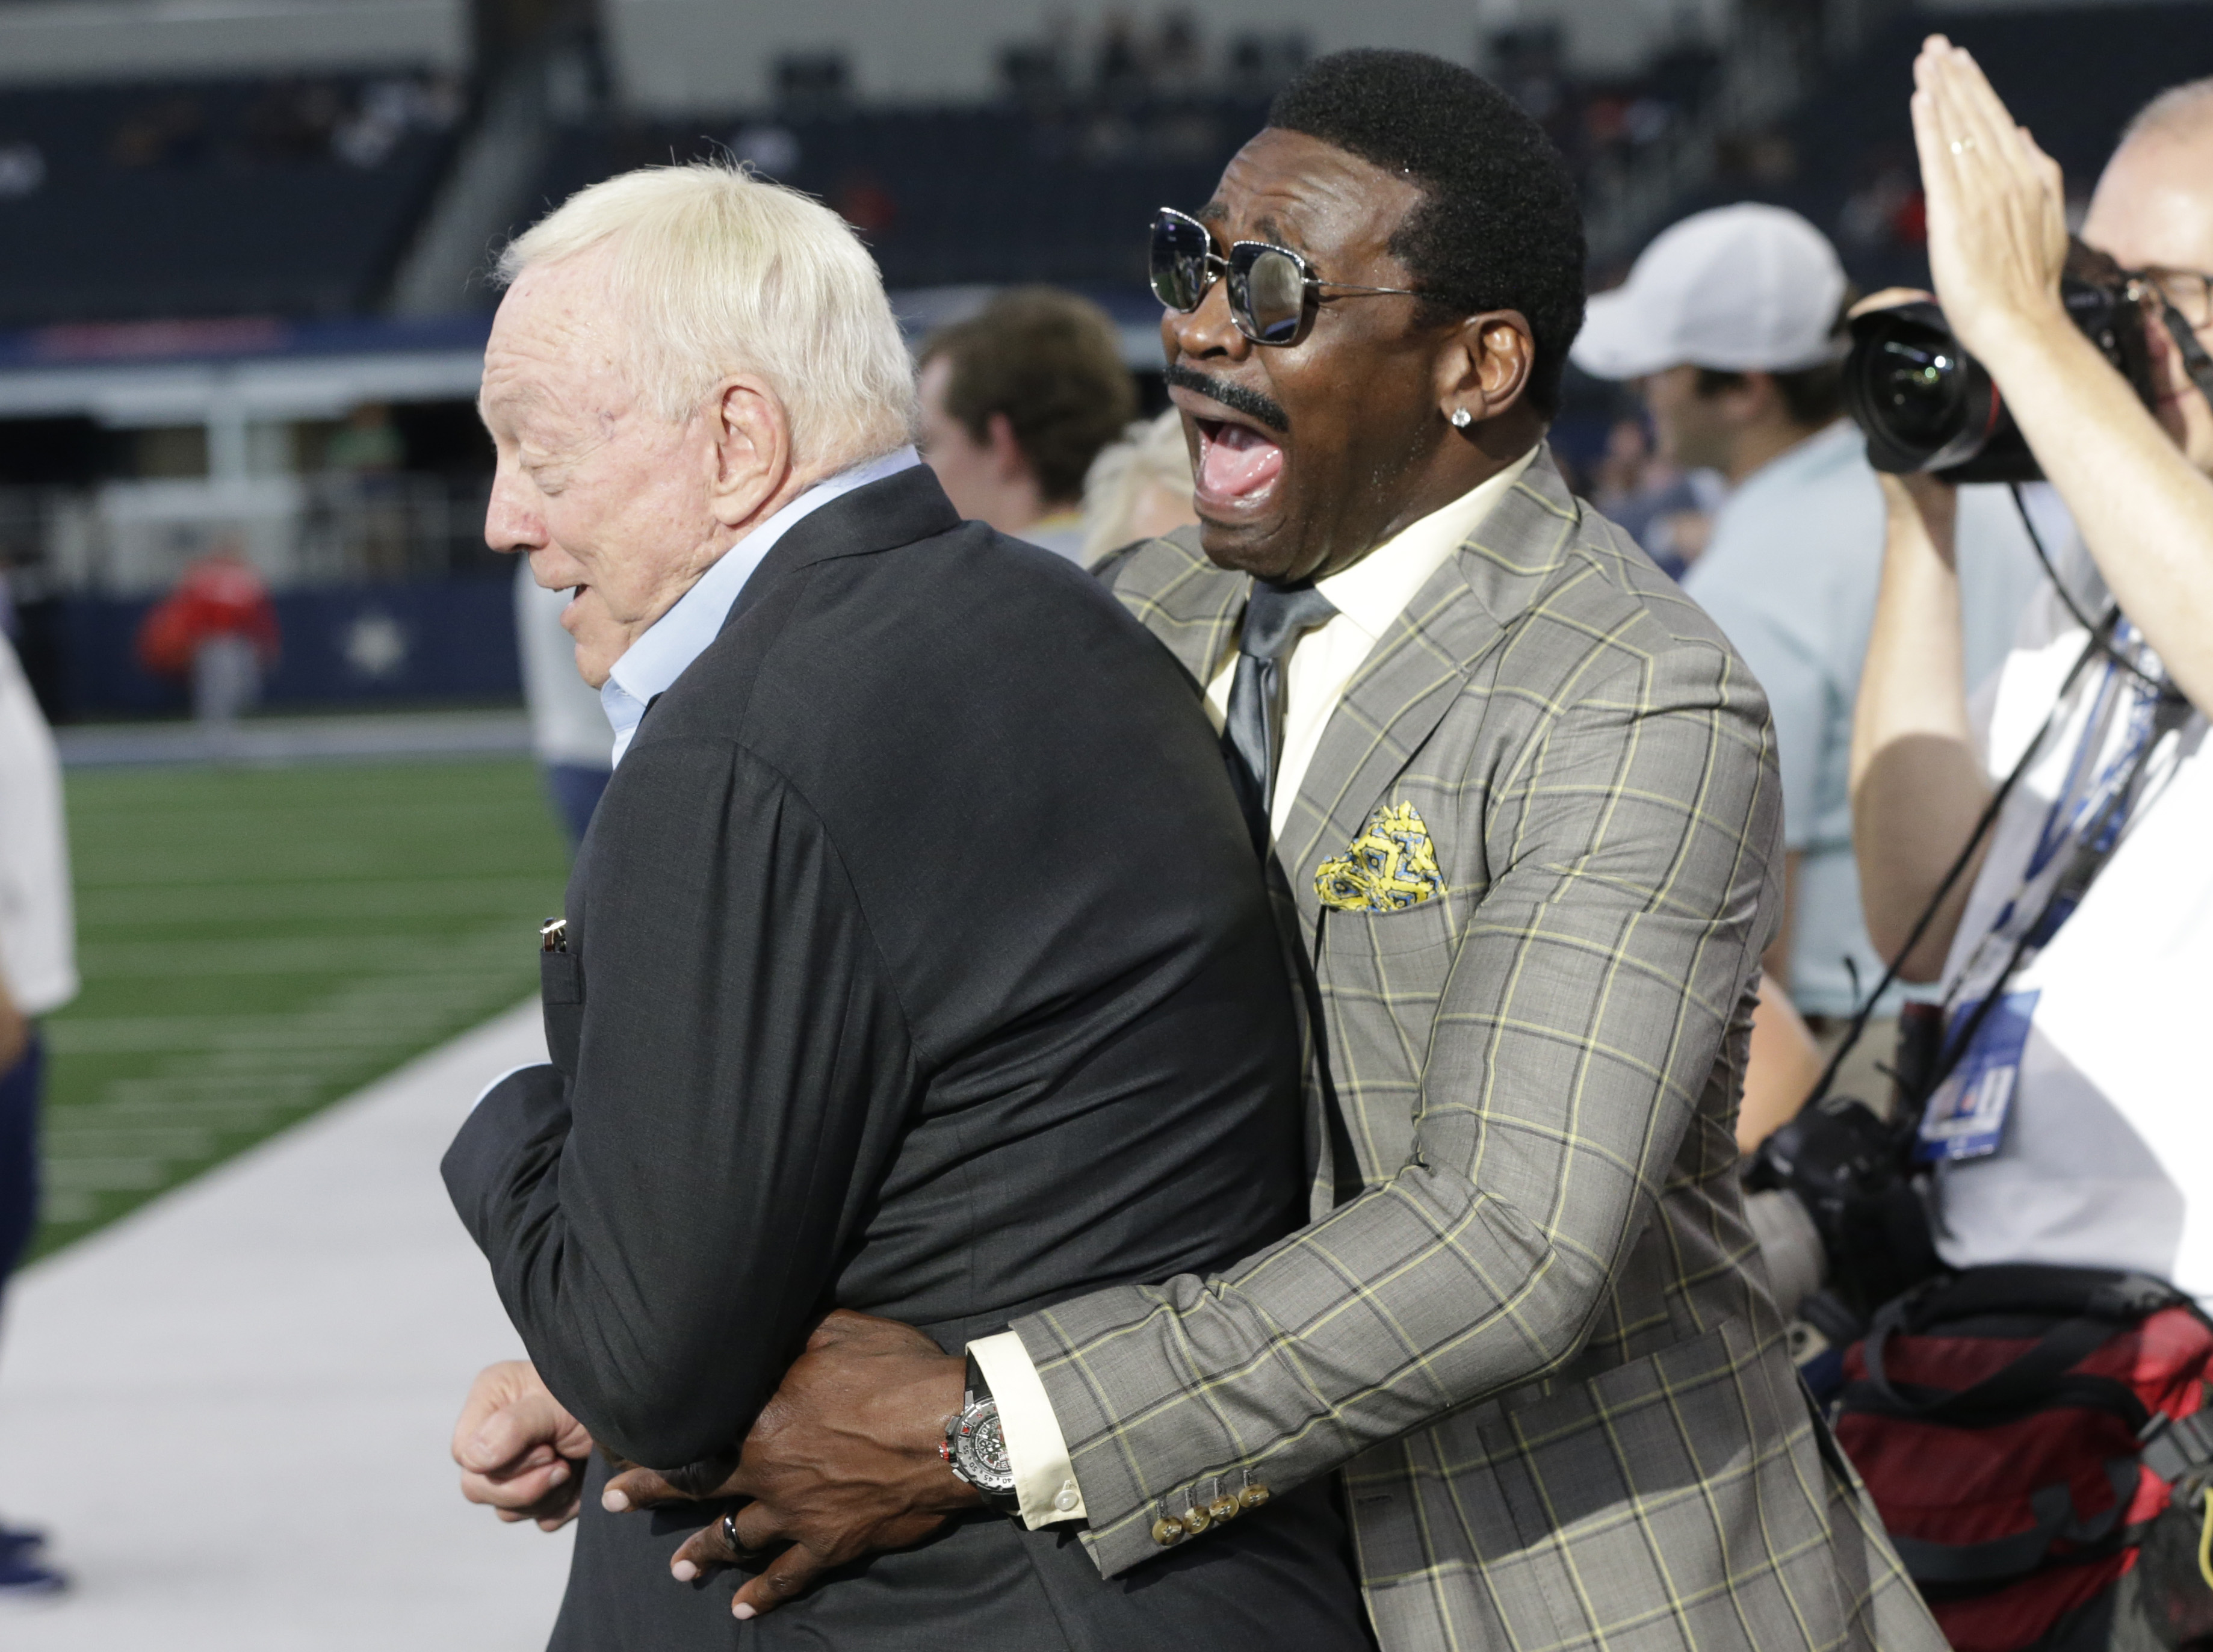 Aug 29, 2019; Arlington, TX, USA; Former Dallas Cowboys Michael Irvin interacts with owner Jerry Jones before the game against the Tampa Bay Buccaneers at AT&T Stadium. Mandatory Credit: Tim Heitman-USA TODAY Sports